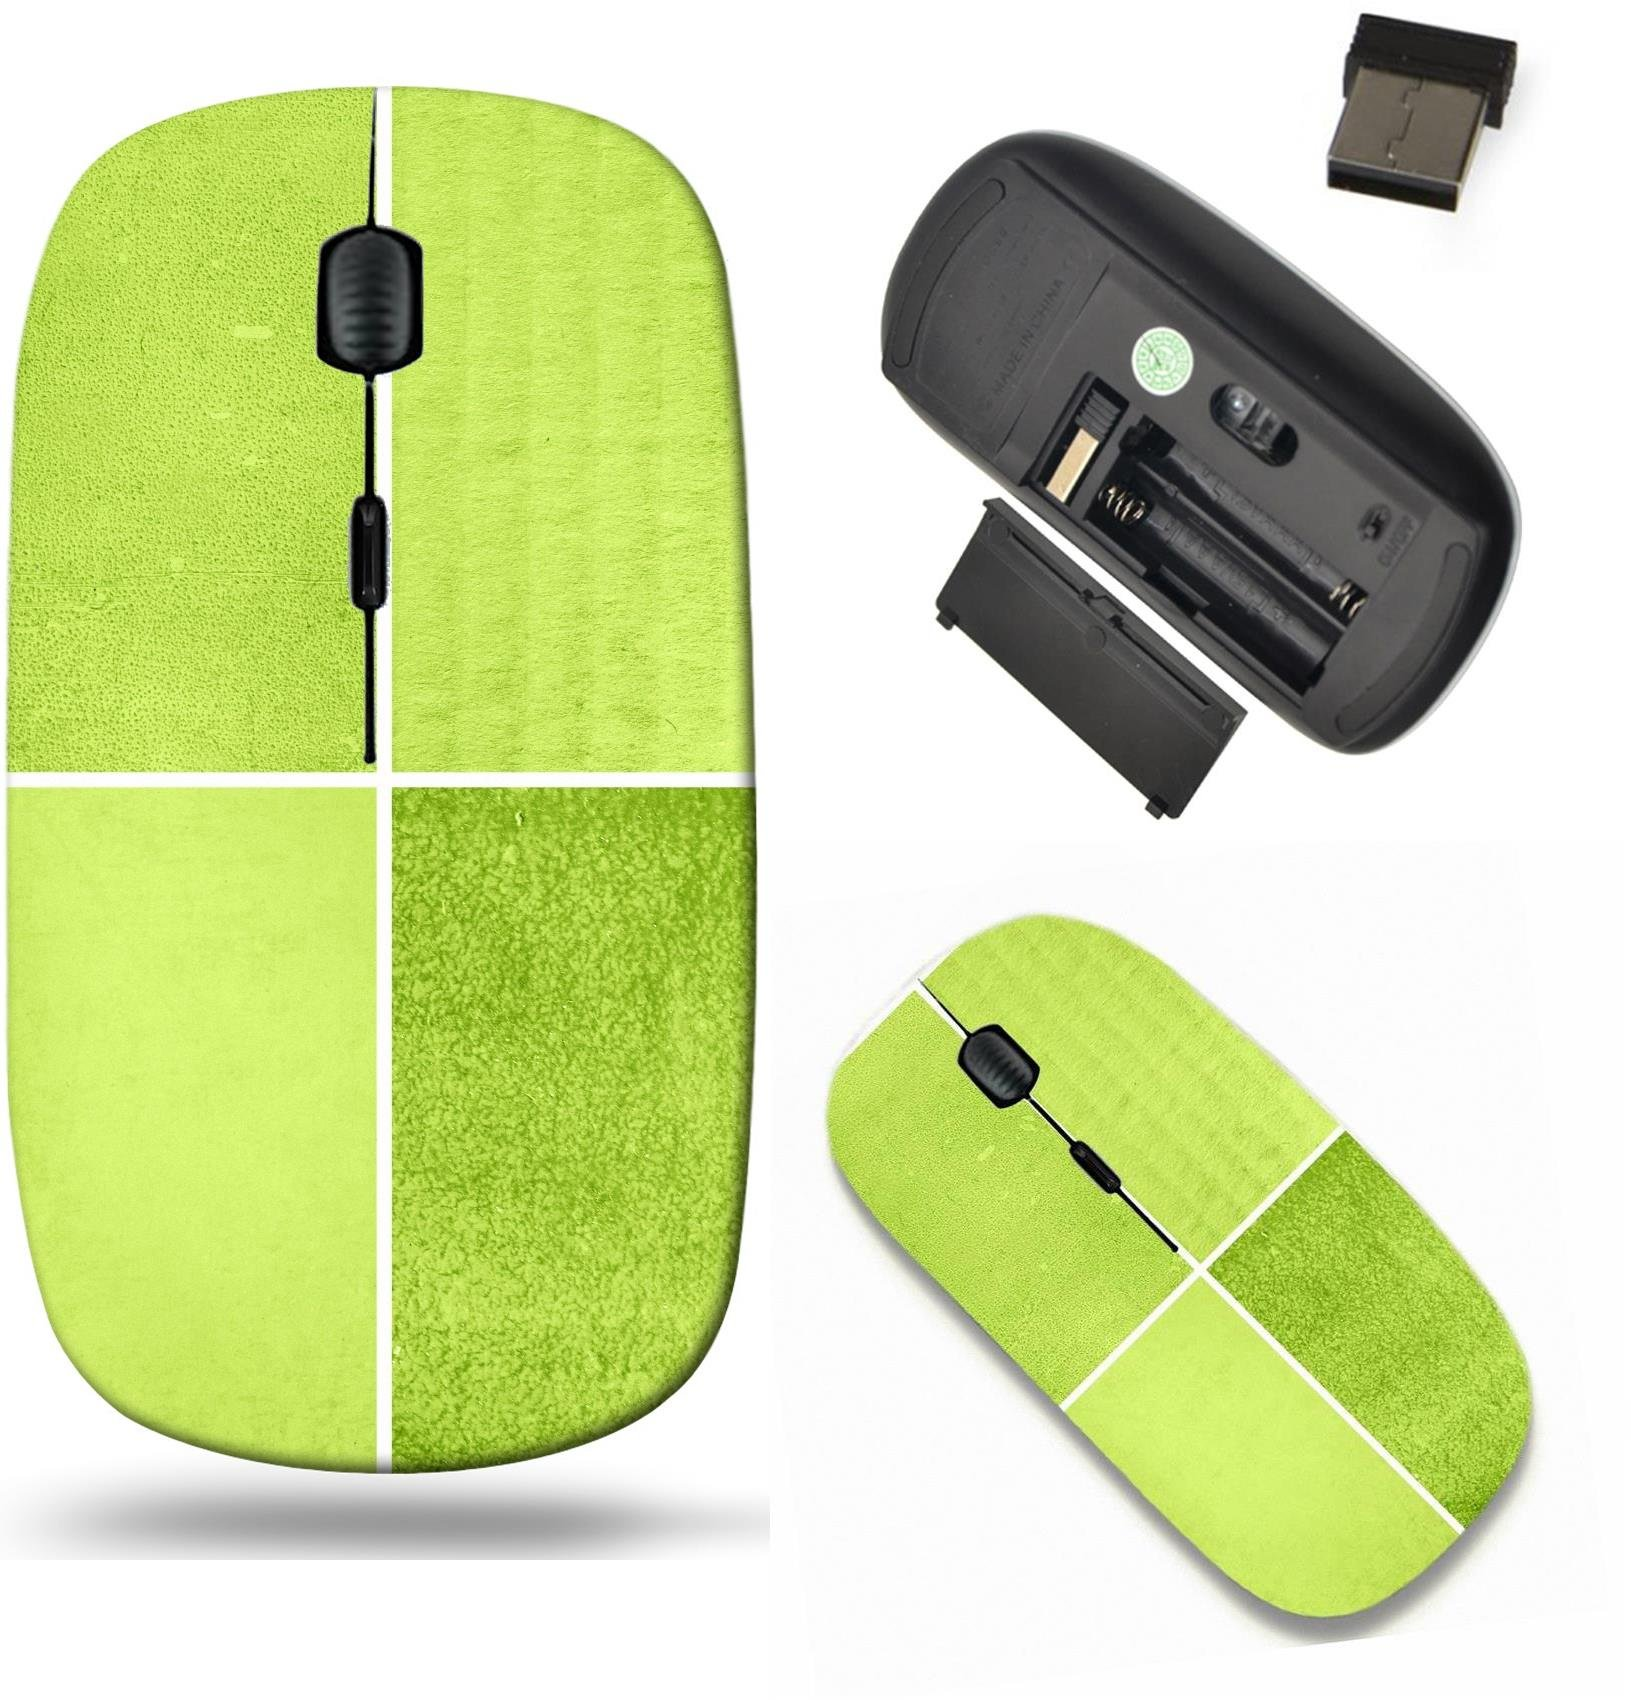 Liili Wireless Mouse Travel 2.4G Wireless Mice with USB Receiver, Click with 1000 DPI for notebook, pc, laptop, computer, mac book The Best of Collection old fashioned grunge background 29214816